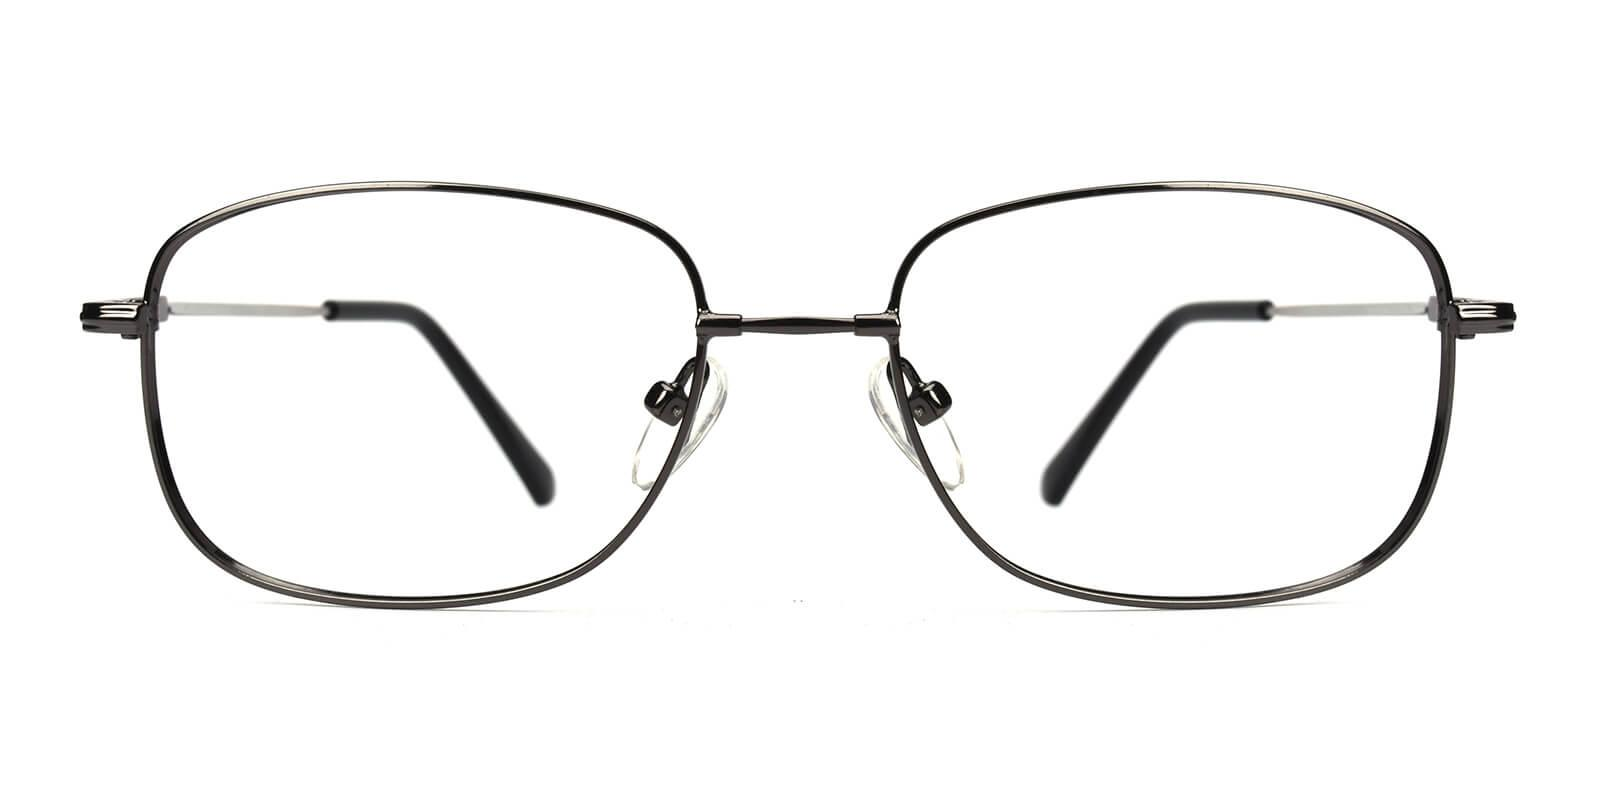 Twist-Gun-Square-Metal-Eyeglasses-detail